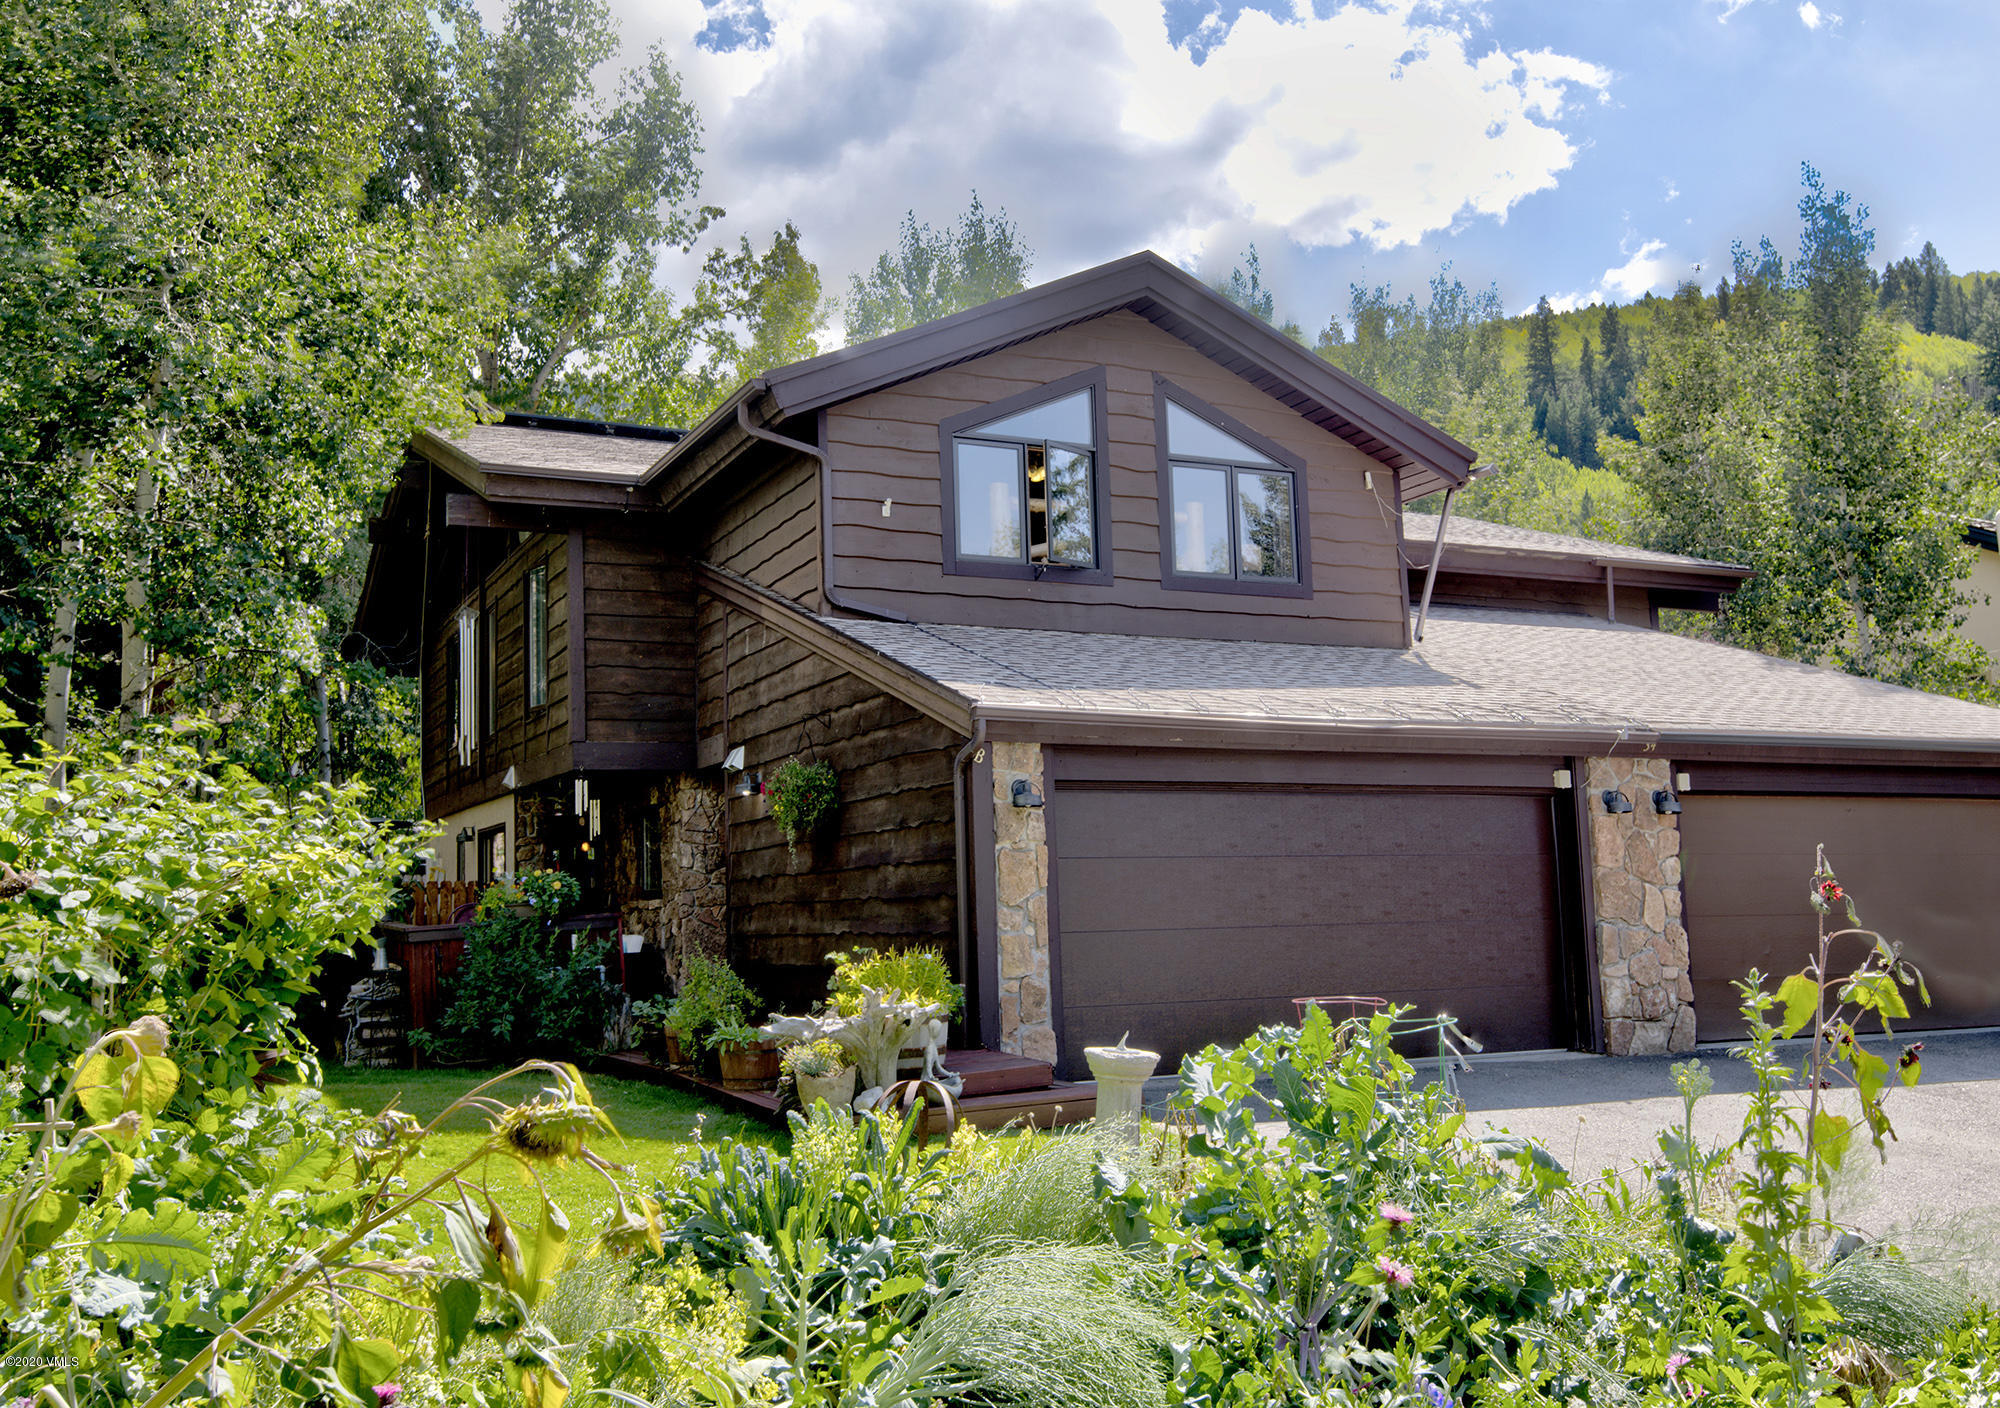 A fabulous location in Eagle-Vail. A quiet neighborhood with a very private and fenced back yard with a dog door. Two raised garden beds with a drip system. Functional kitchen with NEW refrigerator and dishwasher. Gas stove, gas fireplace and gas line outside for grill. Walk-in pantry off of kitchen. Two lofts on upper level. Steam shower in Master bathroom. Washer & Dryer in Primary, large walk-in closet. Brand new garage door. Storage shed out back. Beautiful gardens outside. Must see Duplex and neighborhood! Minutes from Vail and Beaver Creek skiing and outdoor activities and restaurants.